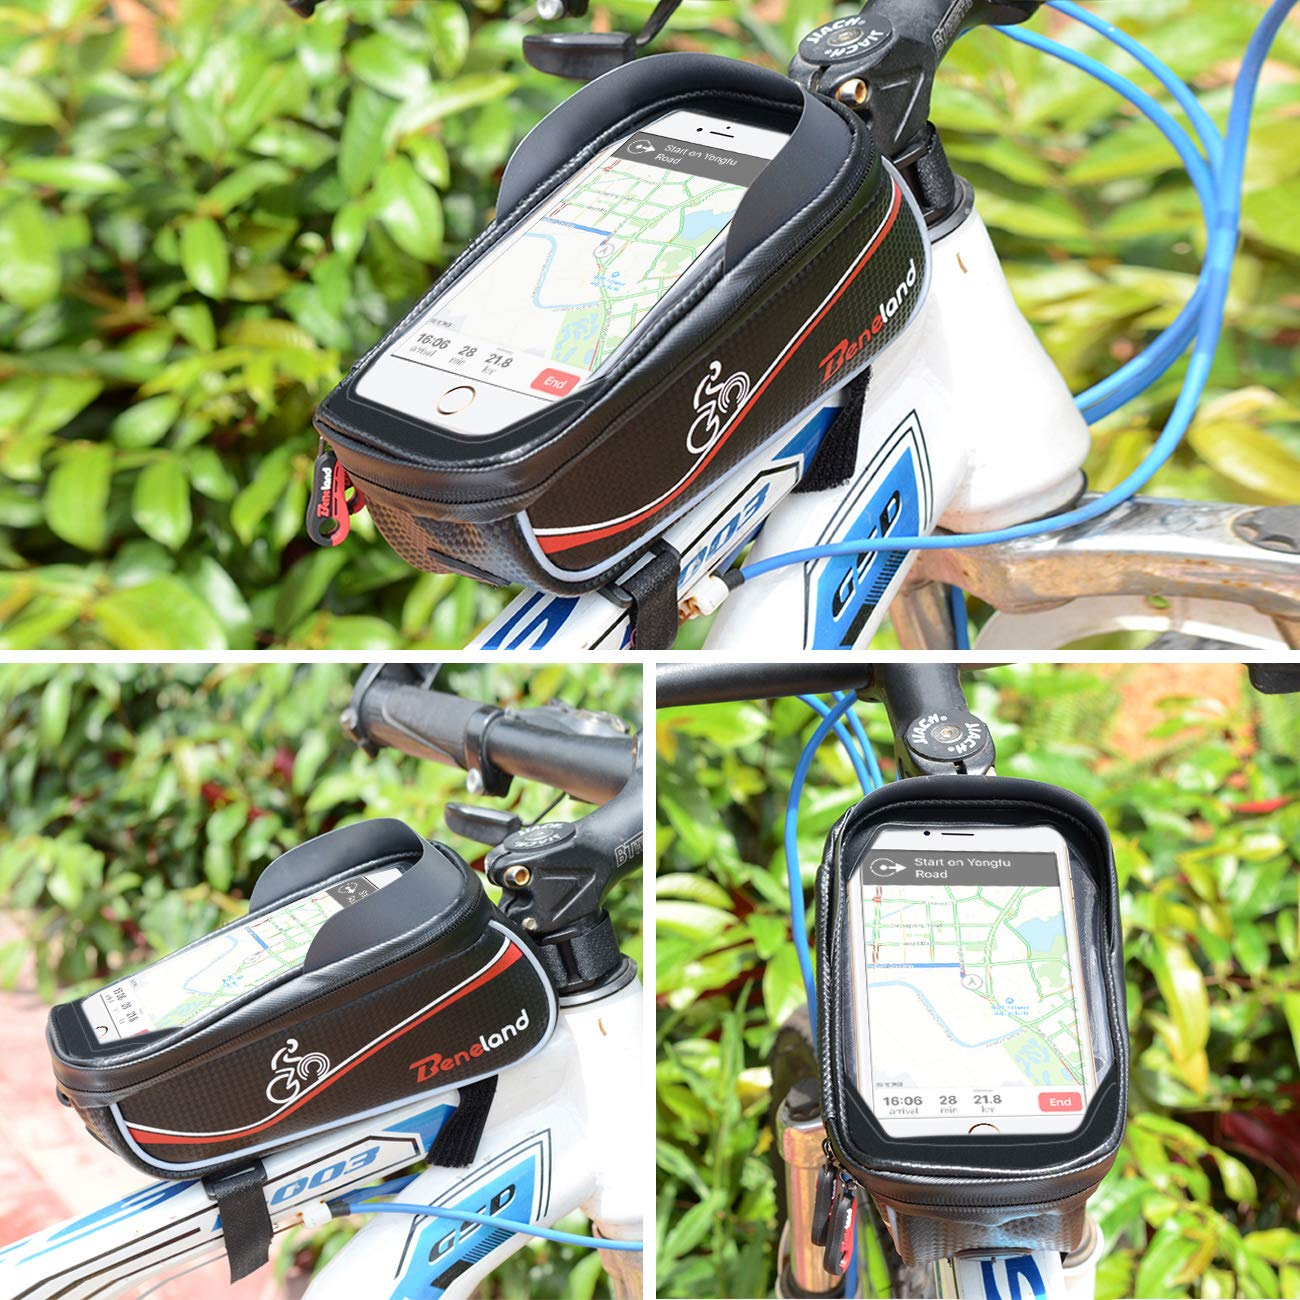 Bike Bag, Frame Bike Bag with Waterproof Touch Screen Phone Holder Case for iPhone X 8 7 6s 6 plus 5s 5/Samsung Galaxy s7 s6 note 7 Cellphone Below 6.0 Inch by Beneland (Image #7)